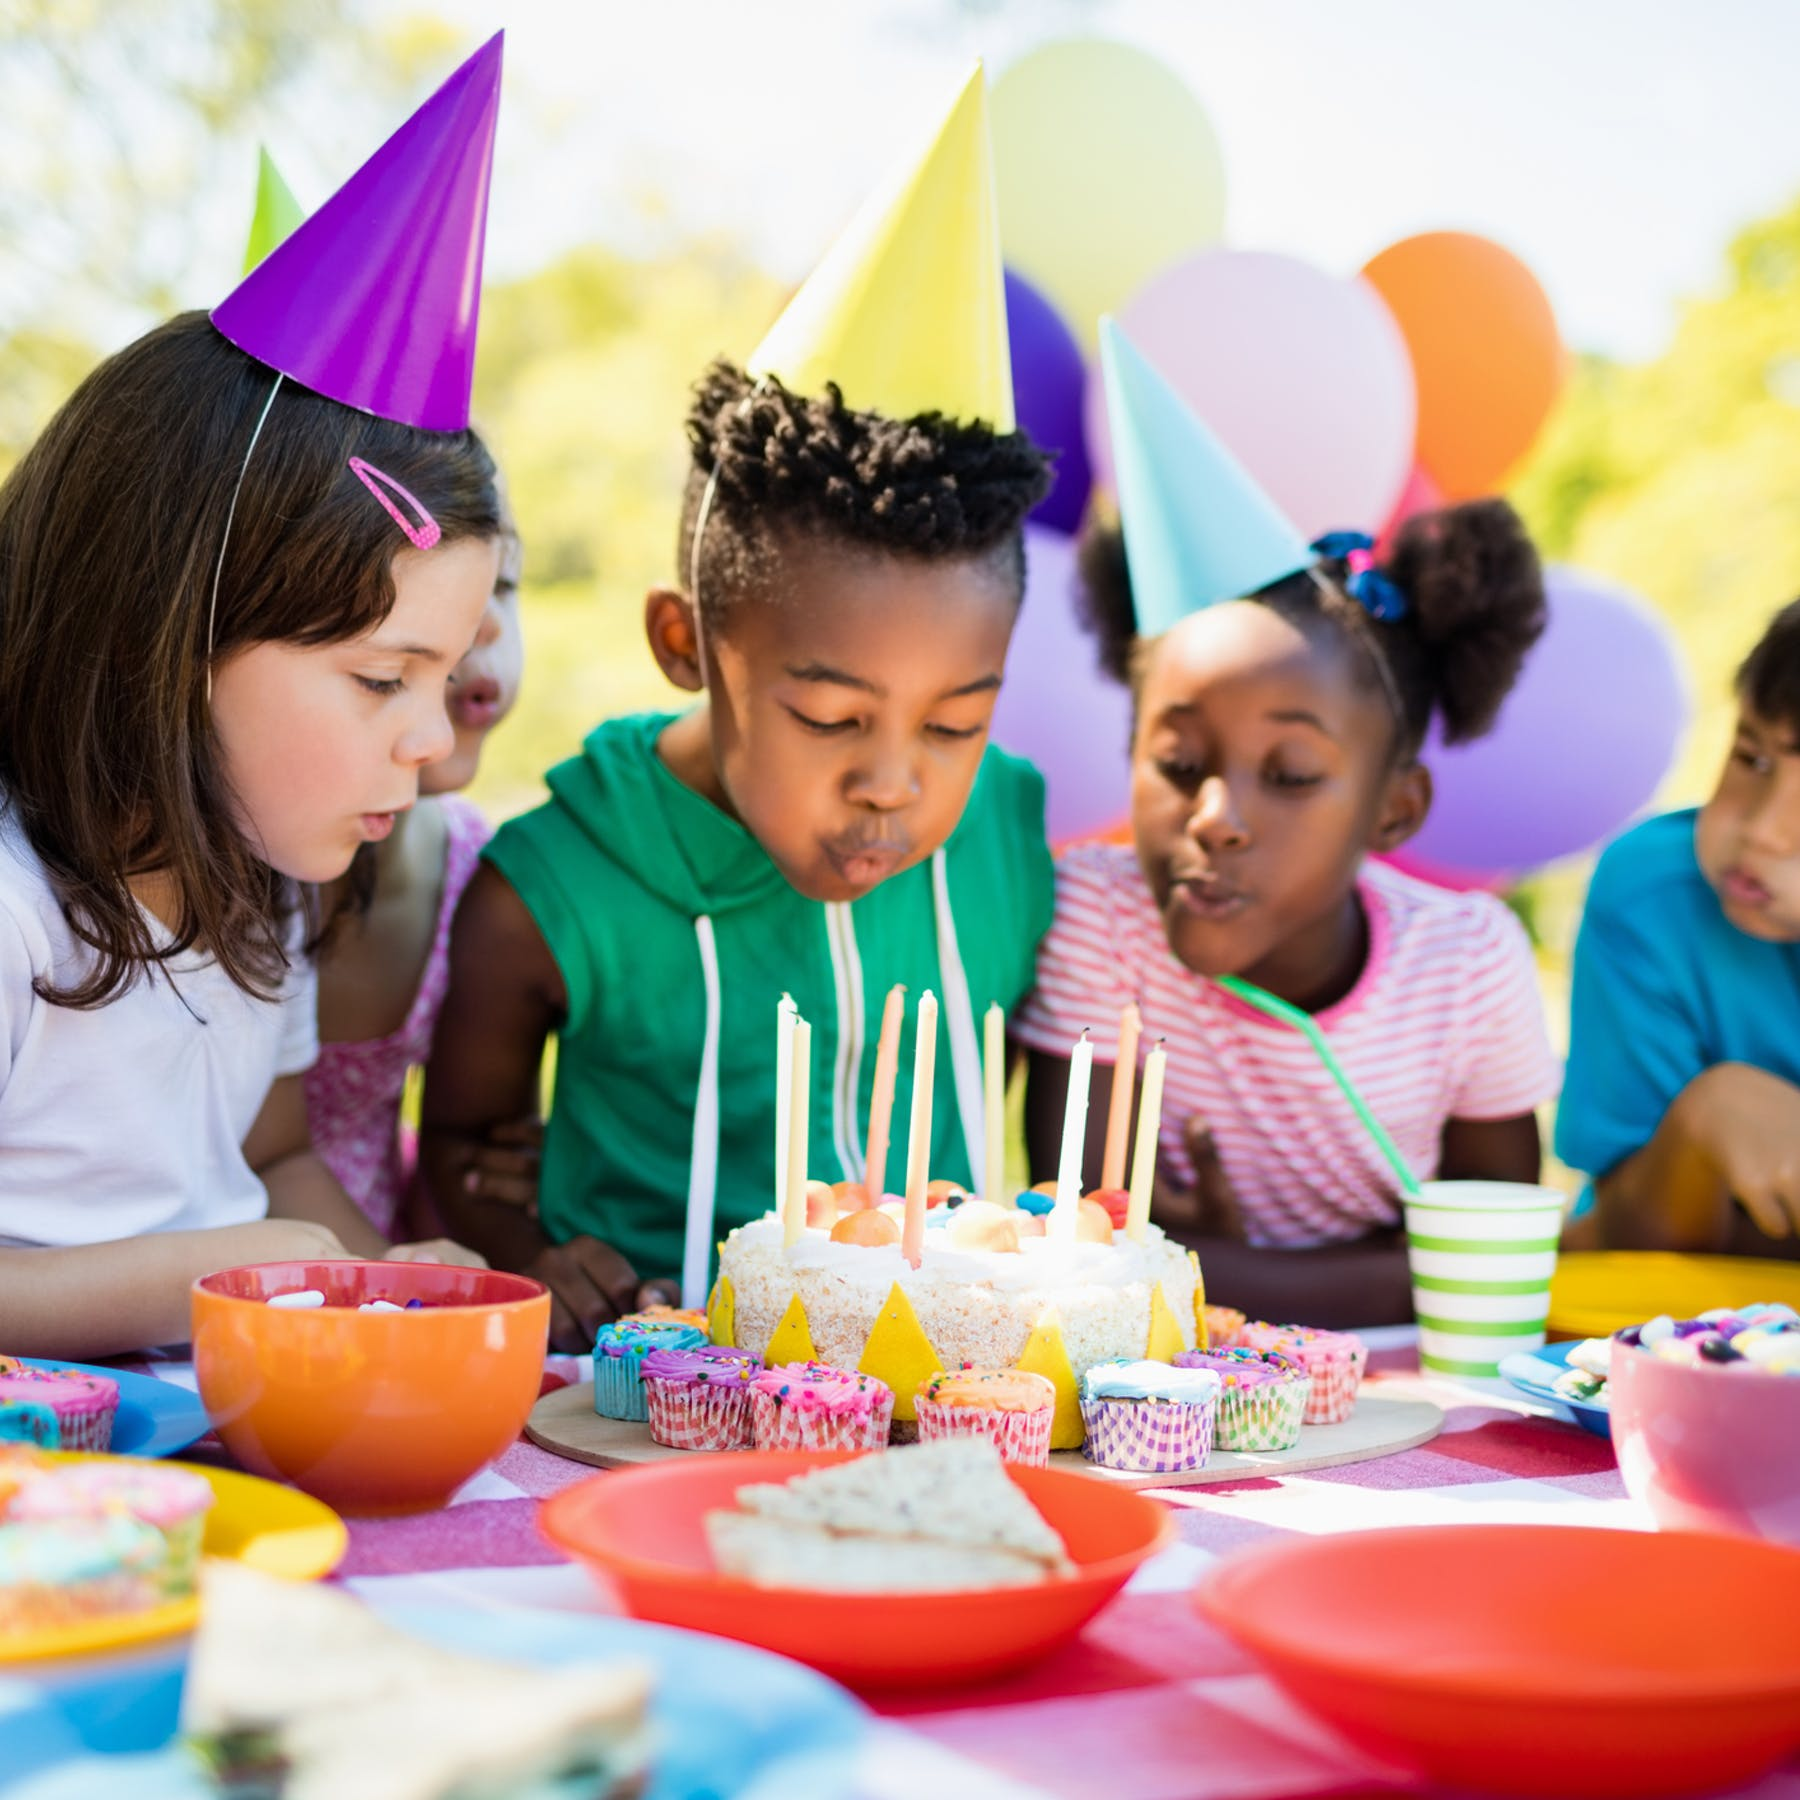 How Much Do You Spend On Birthday Gifts For Other Kids